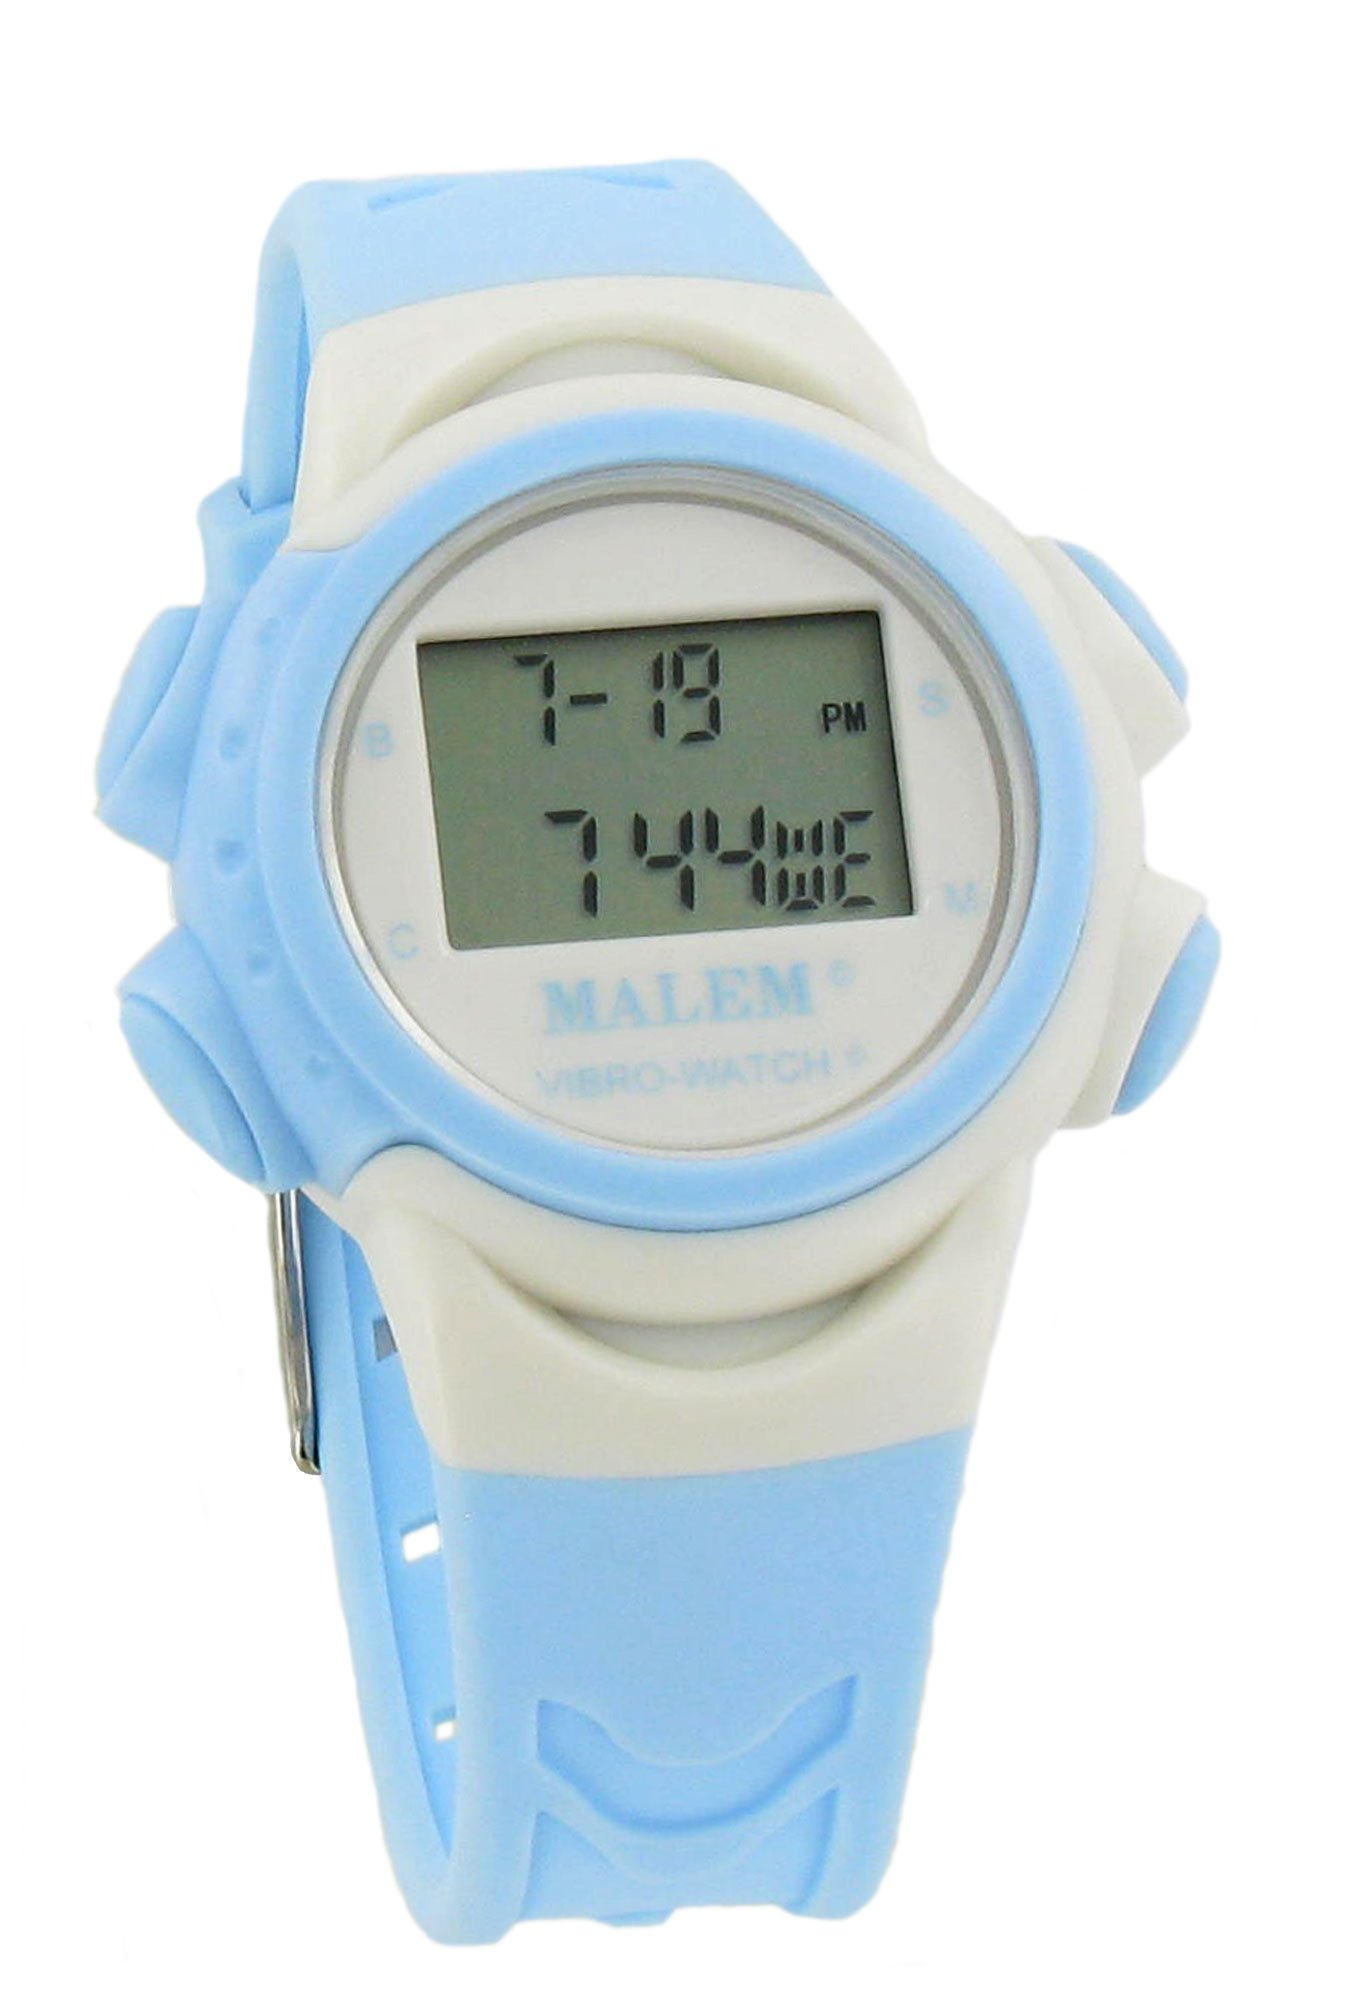 Malem Vibro-Watch 12 Alarm Vibrating Watch - White/Light Blue by Malem